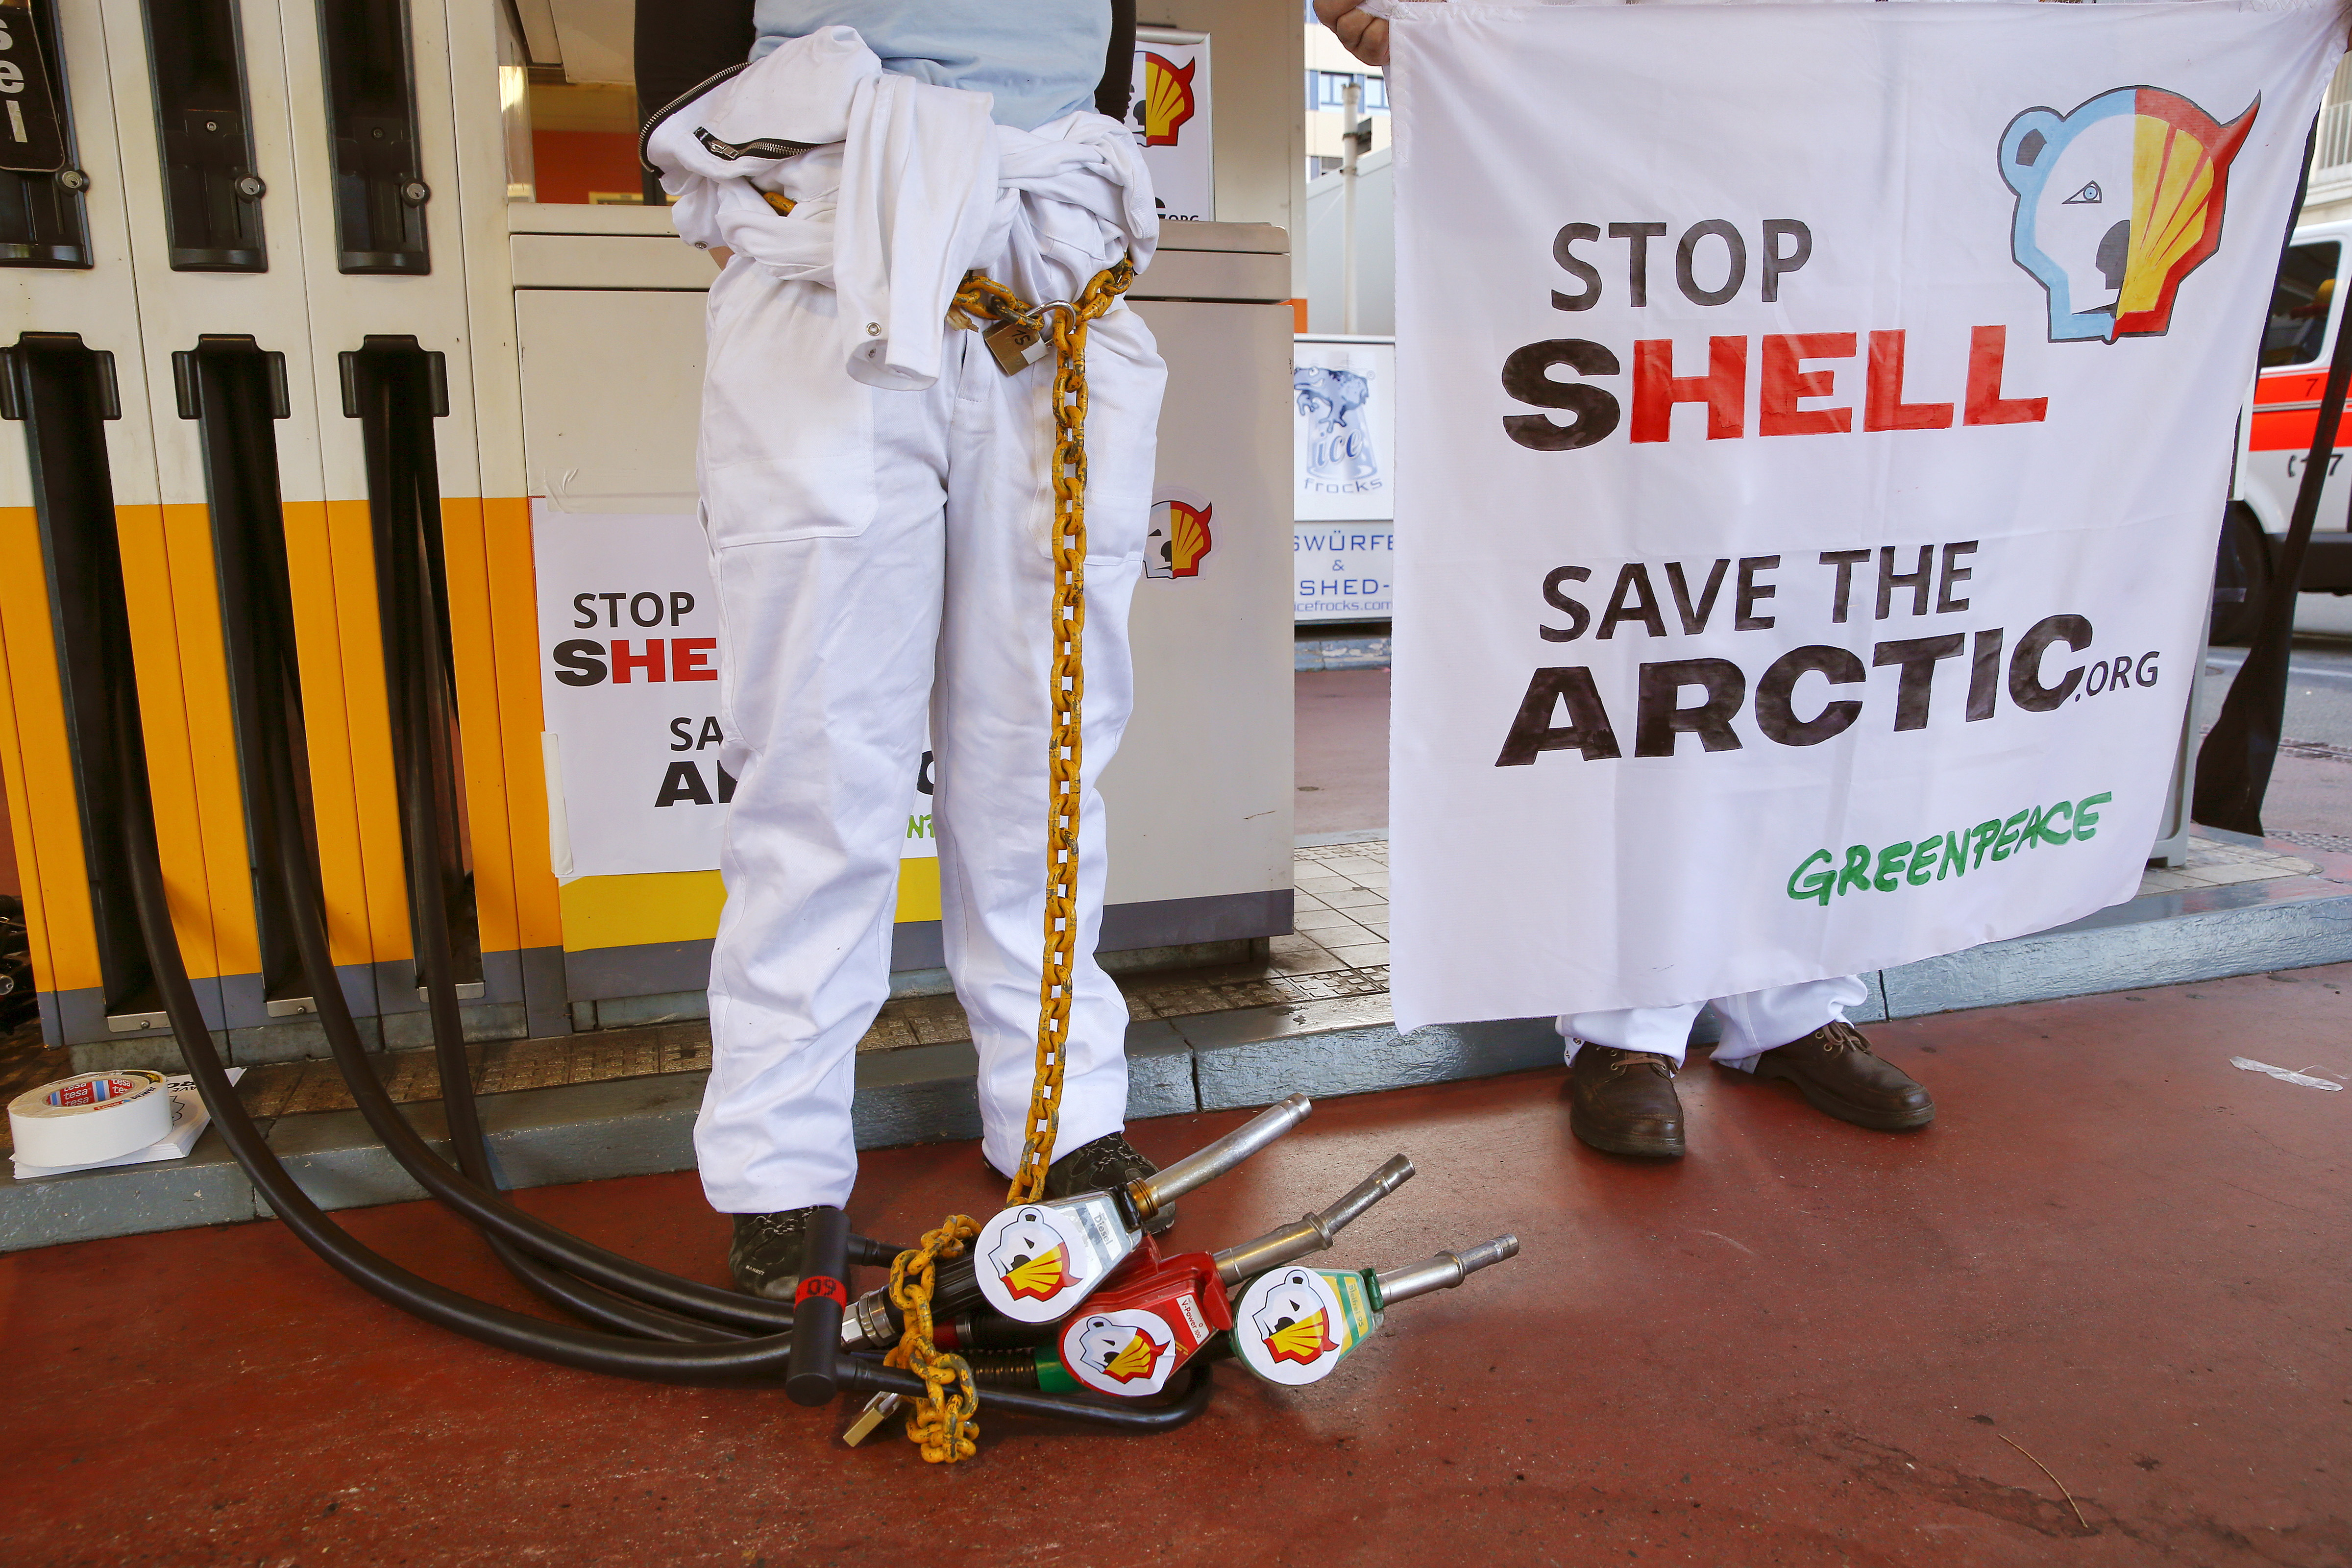 A member of Greenpeace is chained to a gas pump at a Shell gas station during a protest in Zurich